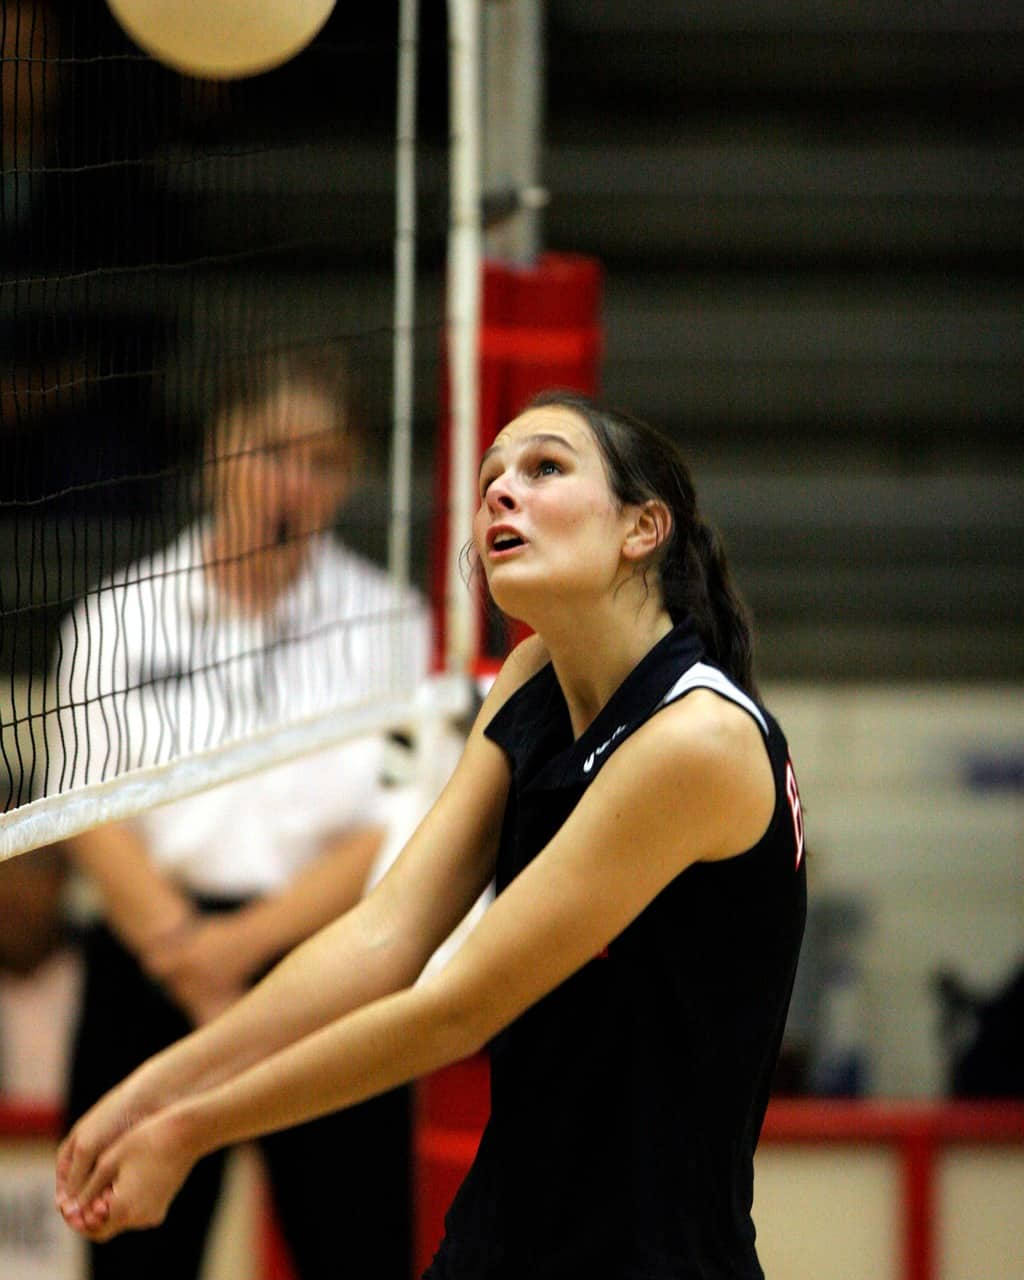 Volleyball player anticipating the ball